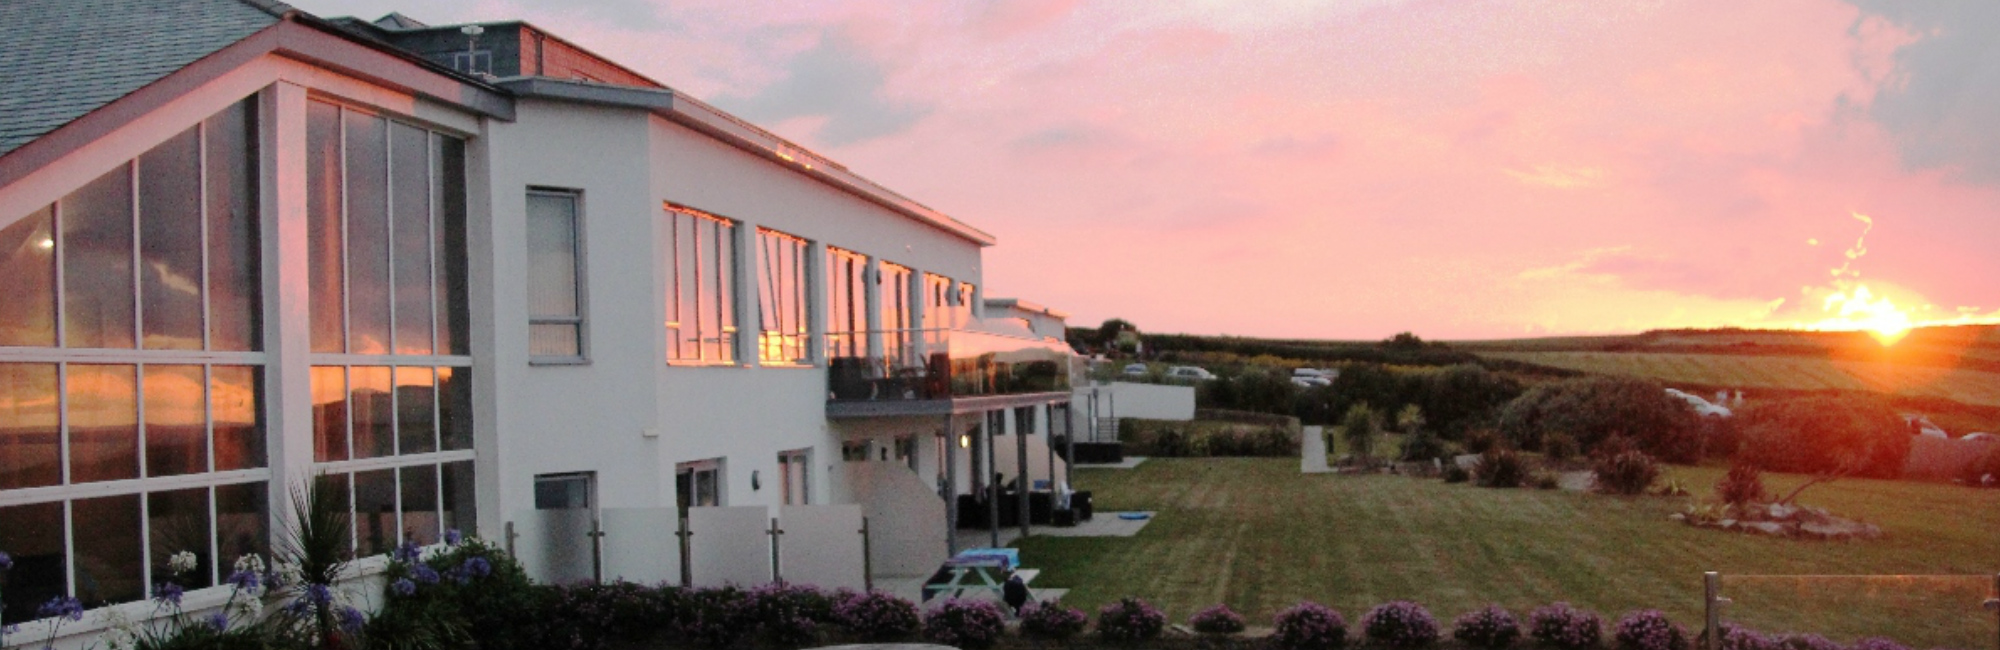 Crantock Bay Apartment sunset - Holiday Apartments